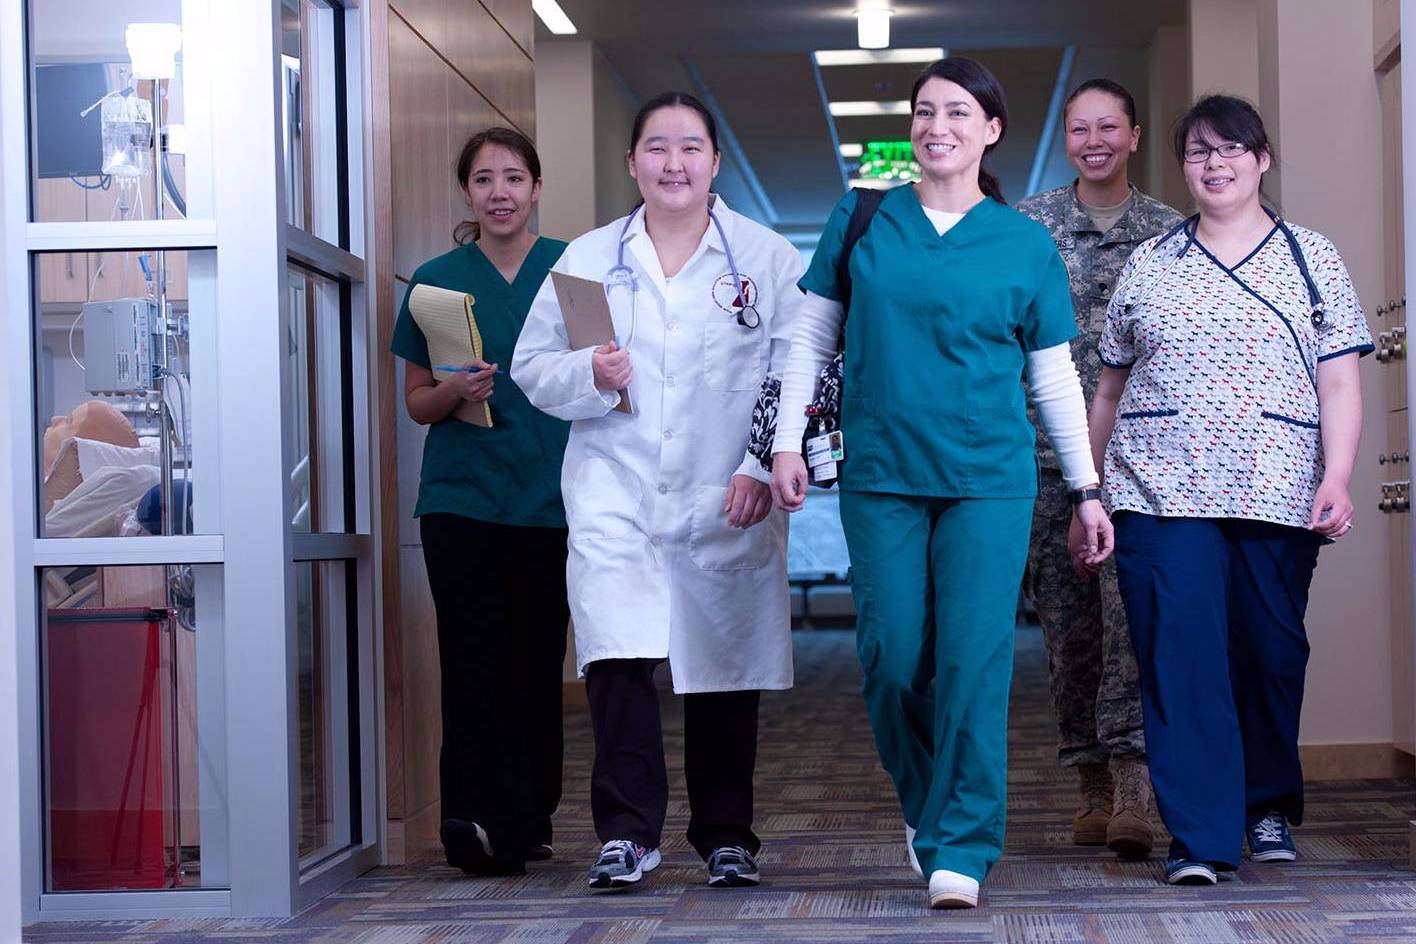 Alaska Native Nursing Students